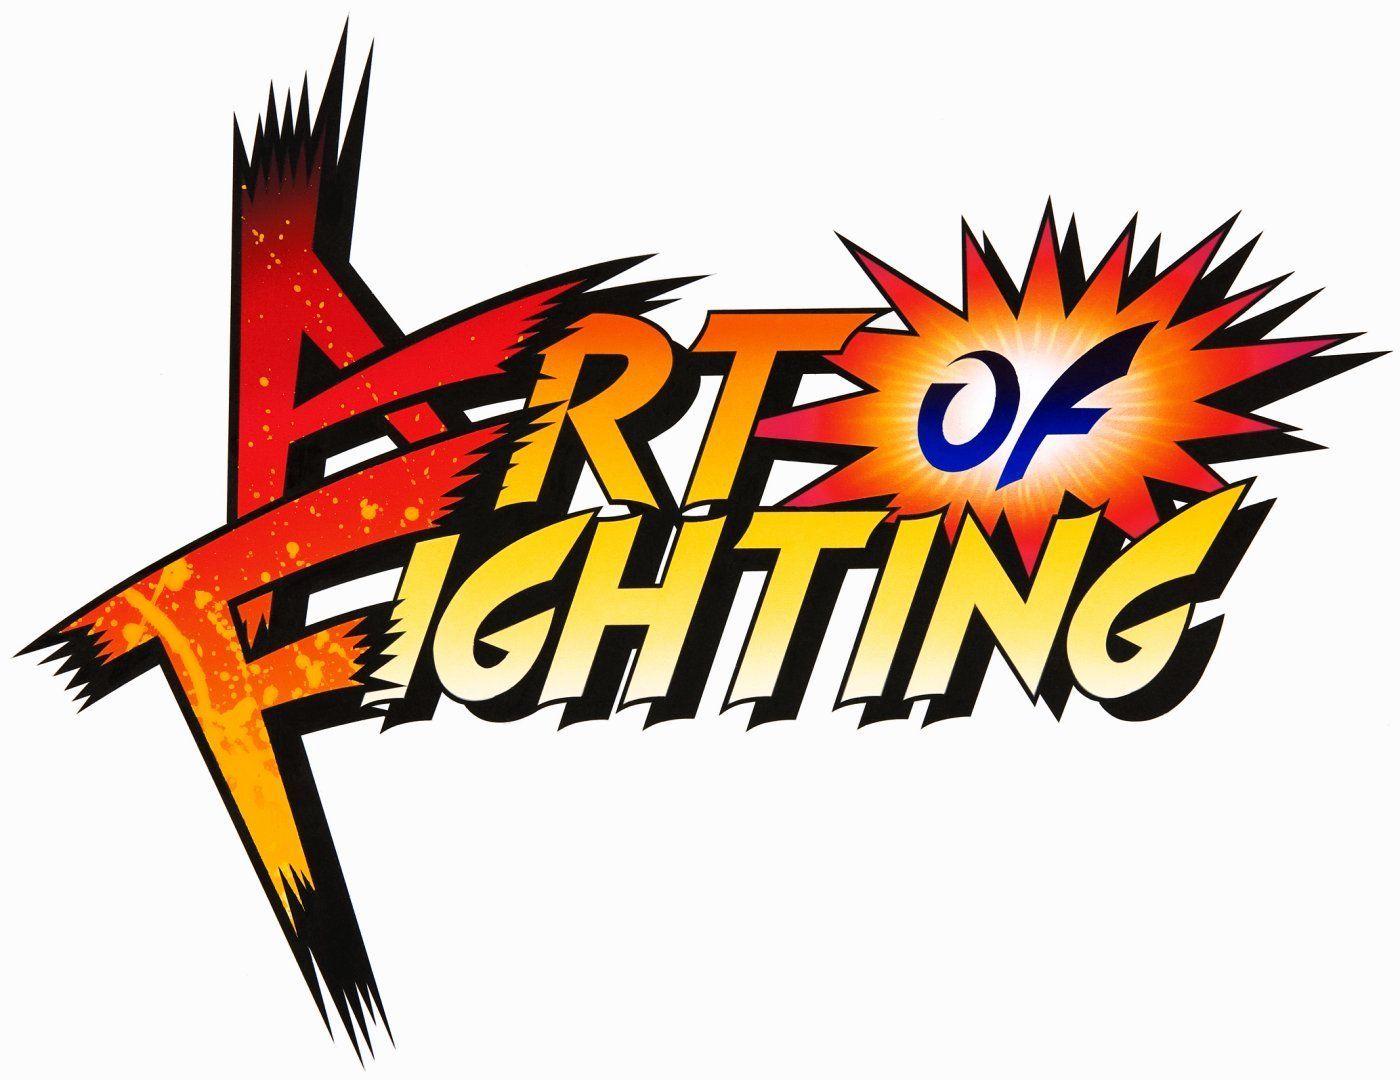 king of fighters logo.